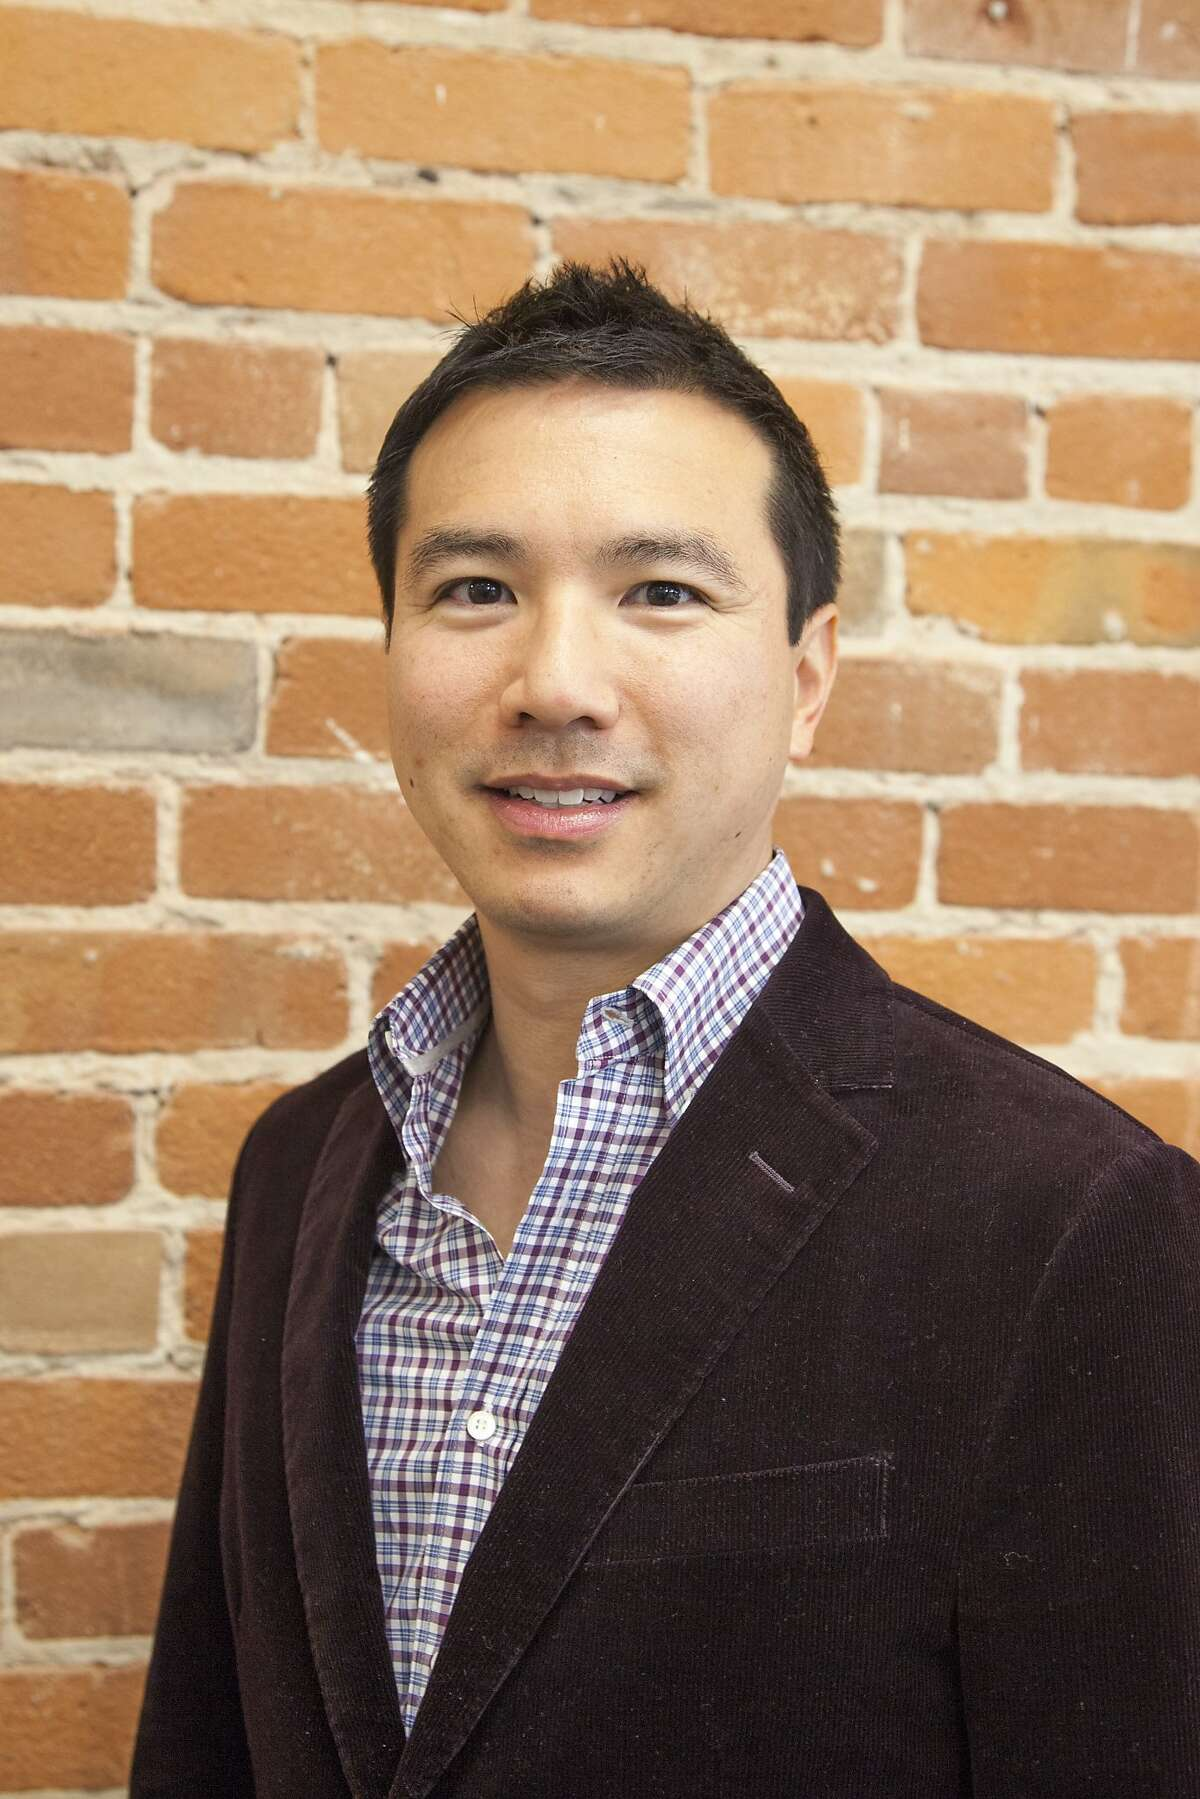 Truecaller appointed Tom Hsieh vice president of growth and partnerships.